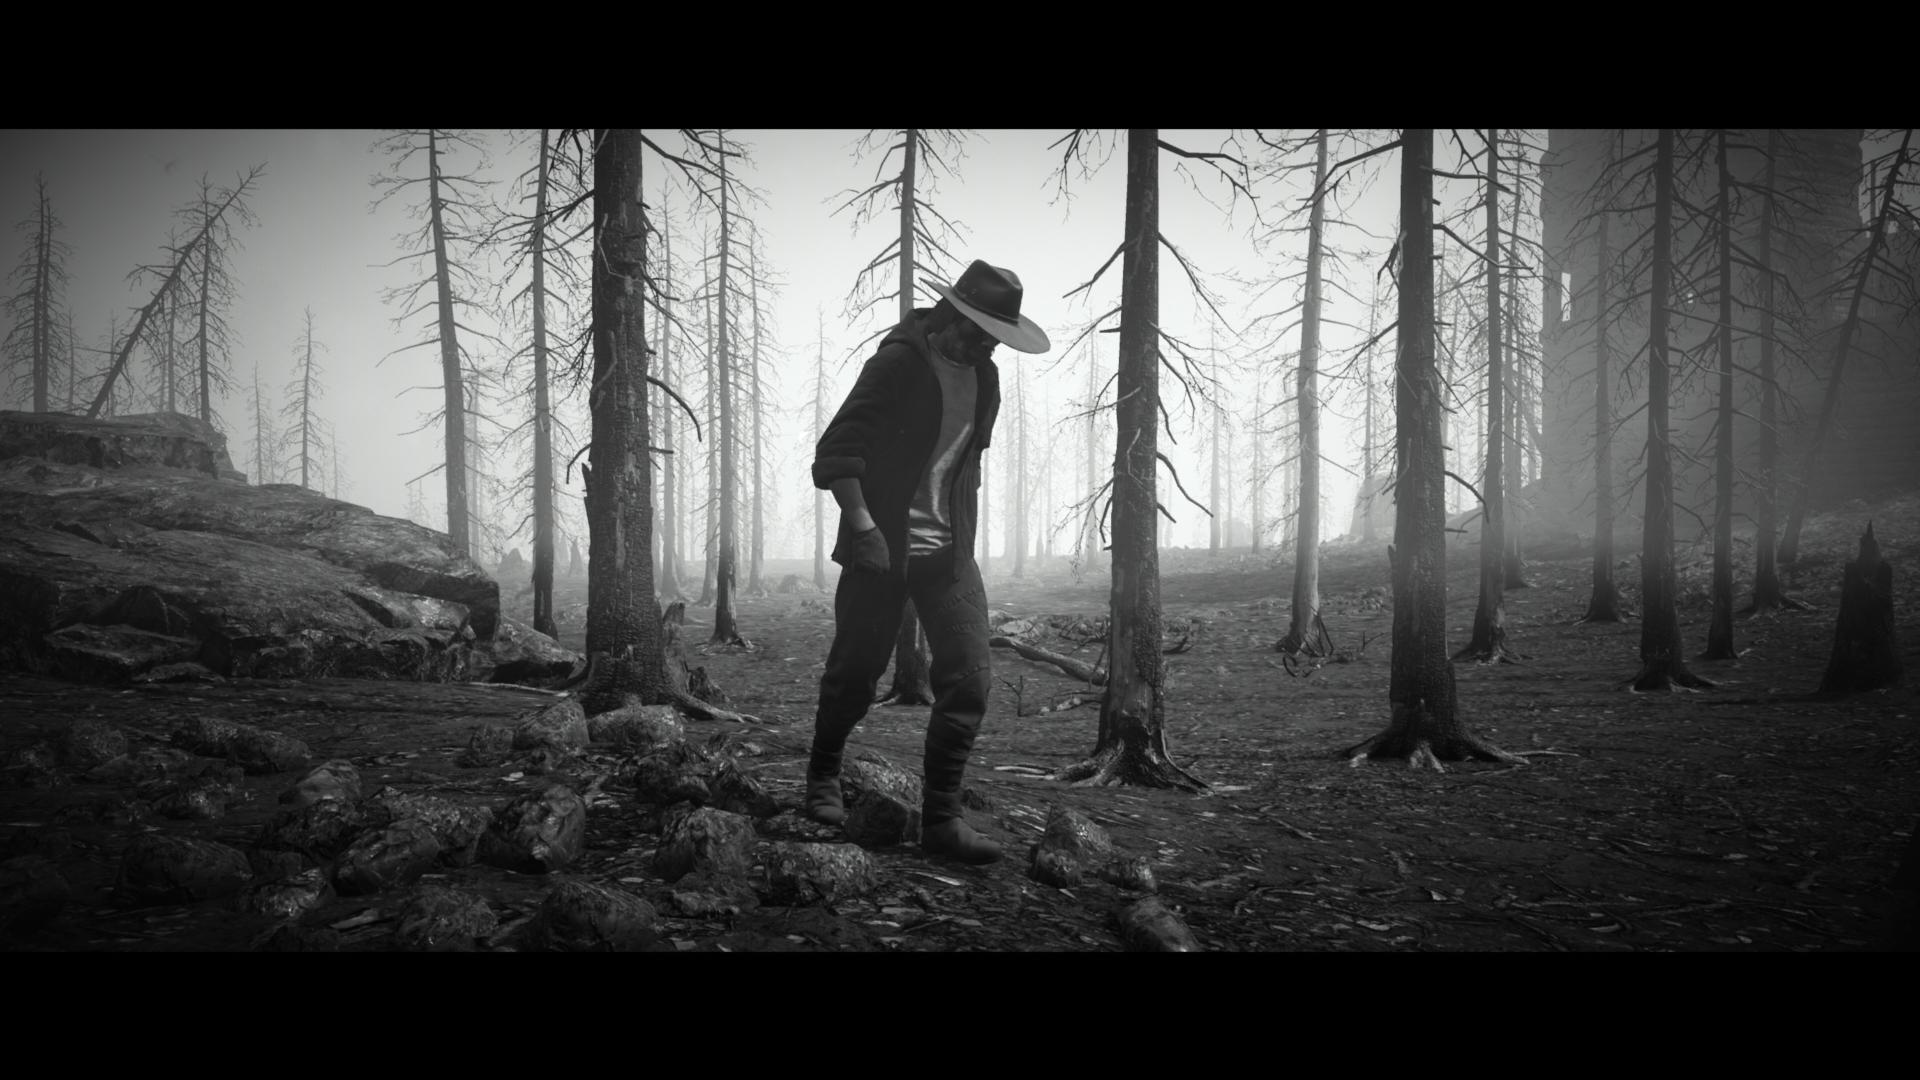 A black and white shot of the player walking forlornly through some burnt out woods.